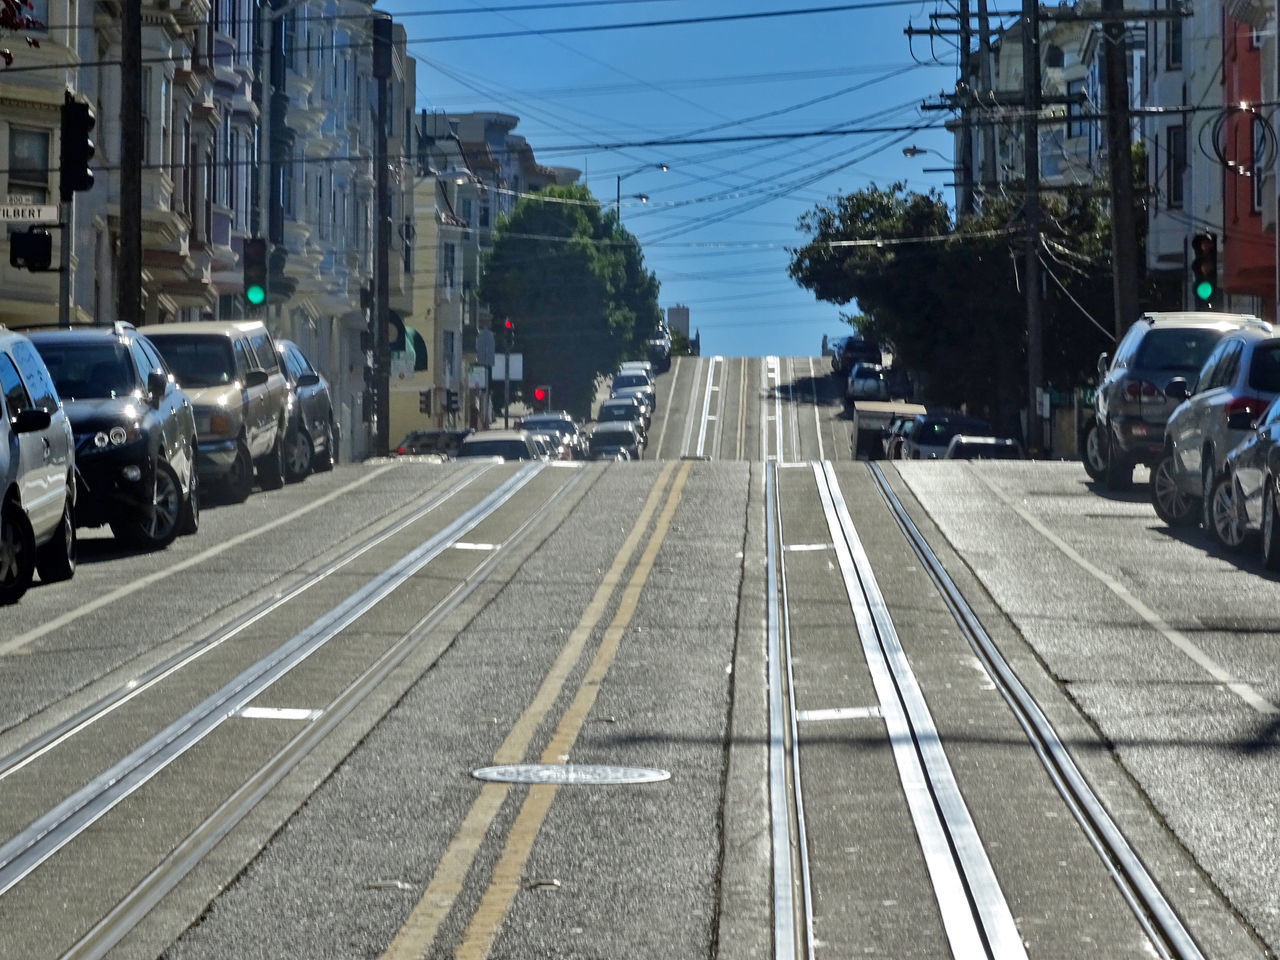 California City No People Outdoors Road San Francisco Sky Street USA USA Photos Travel Destinations Transportation Mode Of Transport Cable Car Beautifully Organized New Talents Mode Of Transportation Finding New Frontiers